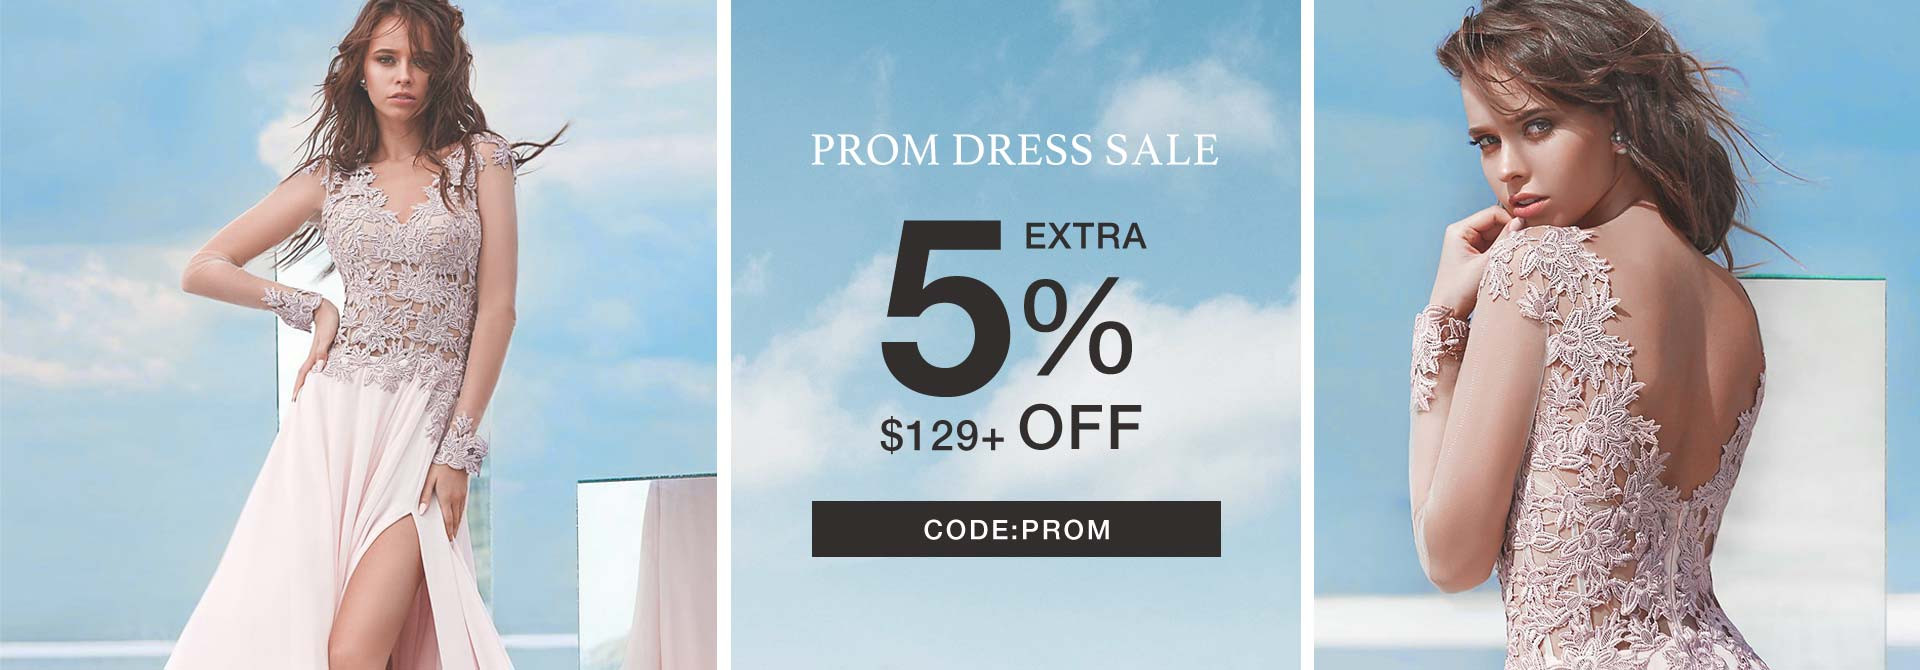 Extra 5% Off Prom Dresses $129+ Code PROM